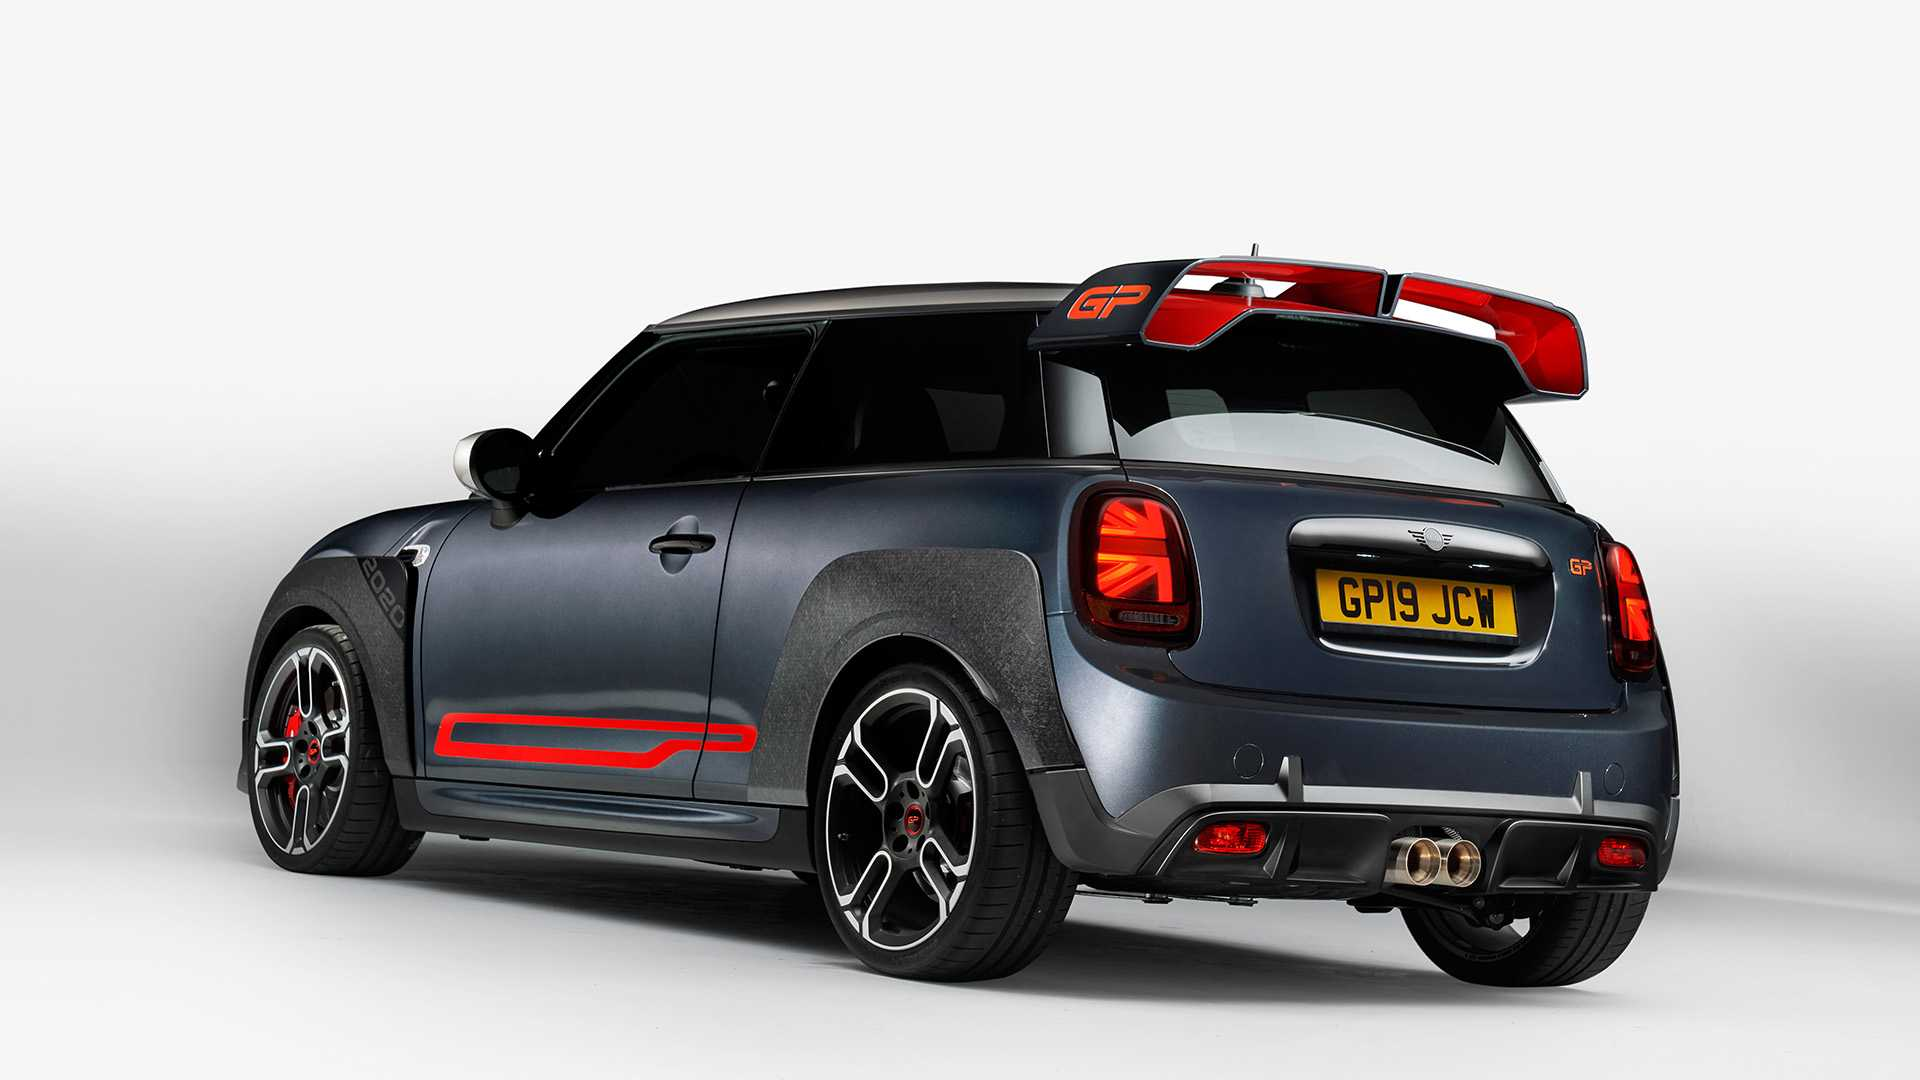 mini-john-cooper-works-gp-2020-12